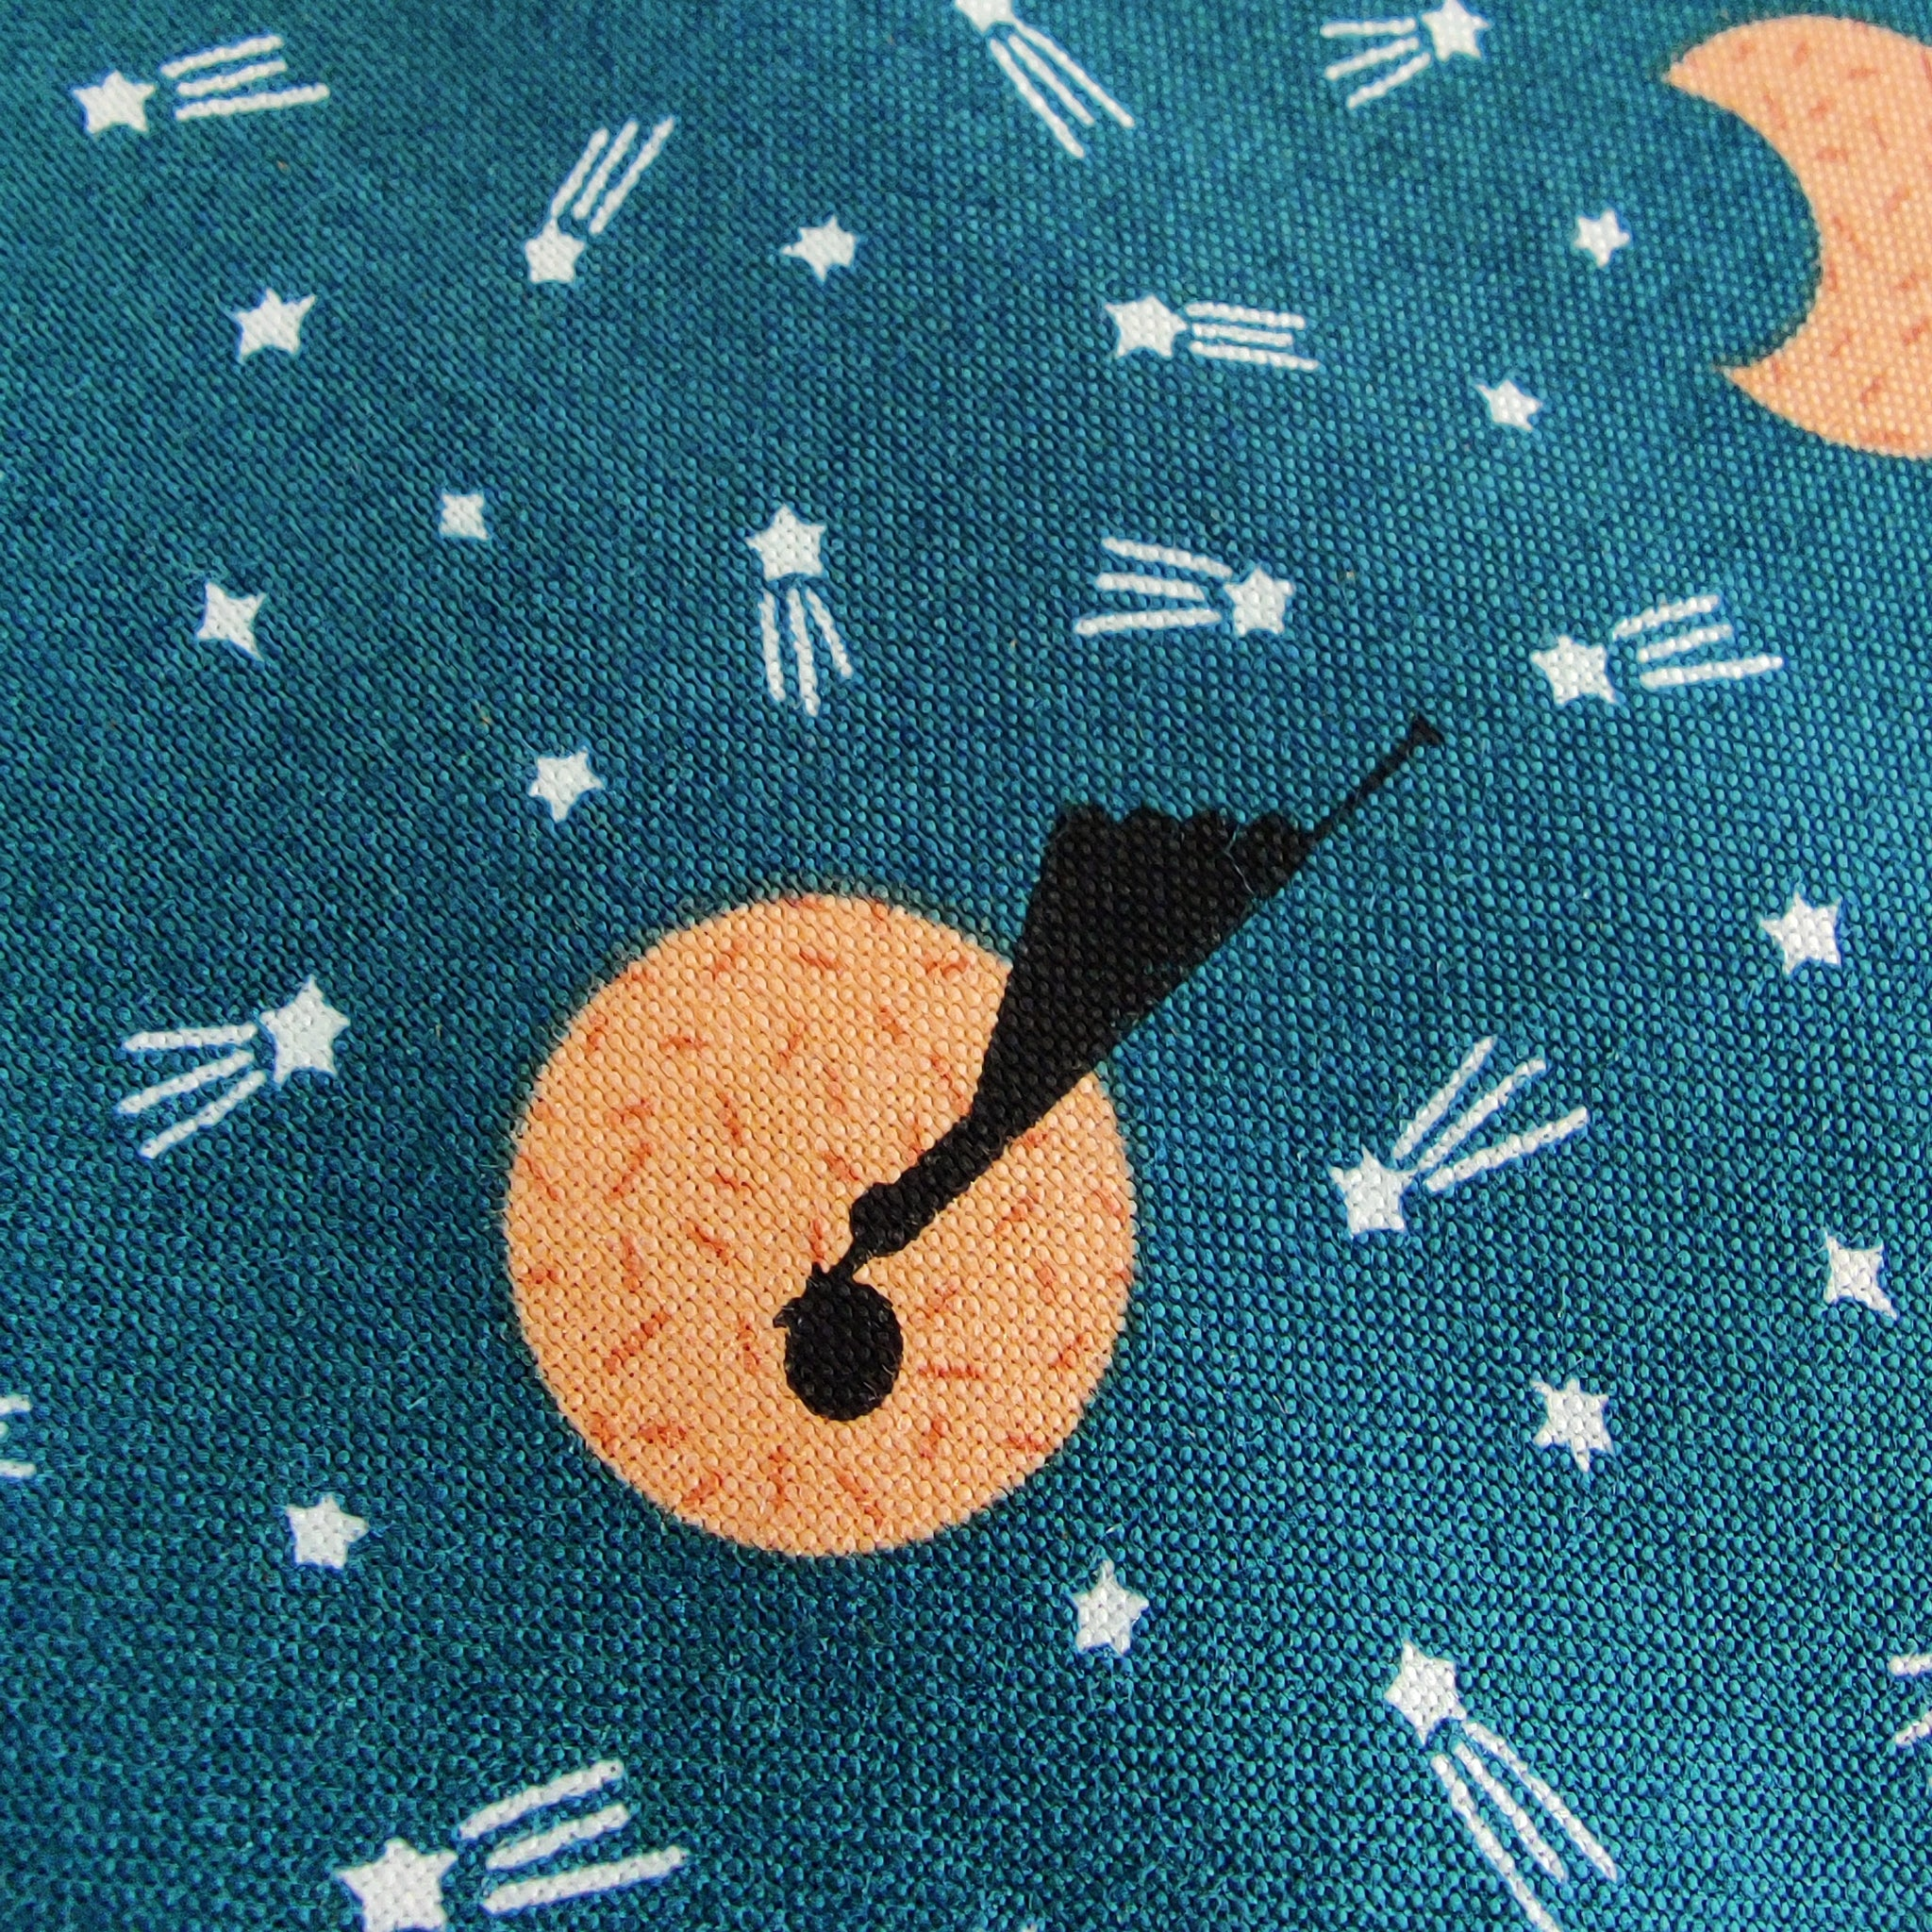 Night Time Stork Delivery Teal | Special Delivery by Lemonni | Cotton Fabric by the Half Yard